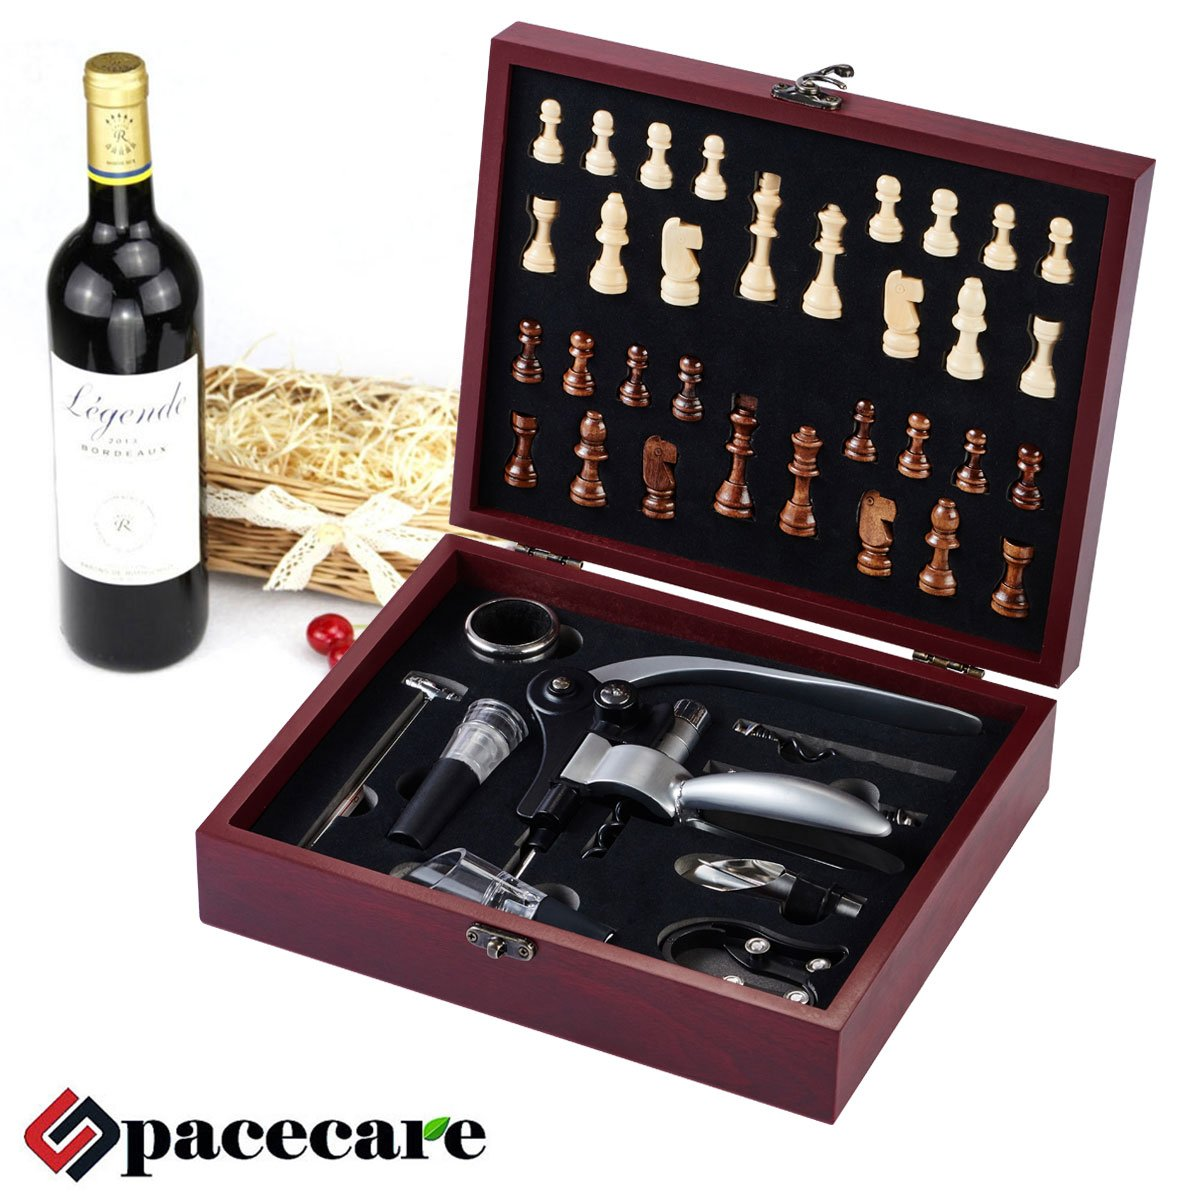 SPACECARE Wine Opener Kit with Chess,Red Wine Beer Bottle Opener Wing Corkscrew,Aerator, Thermometer, Stopper, and Accessories Set with Dark Cherry Wood Case - 10 Piece by SPACECARE (Image #1)